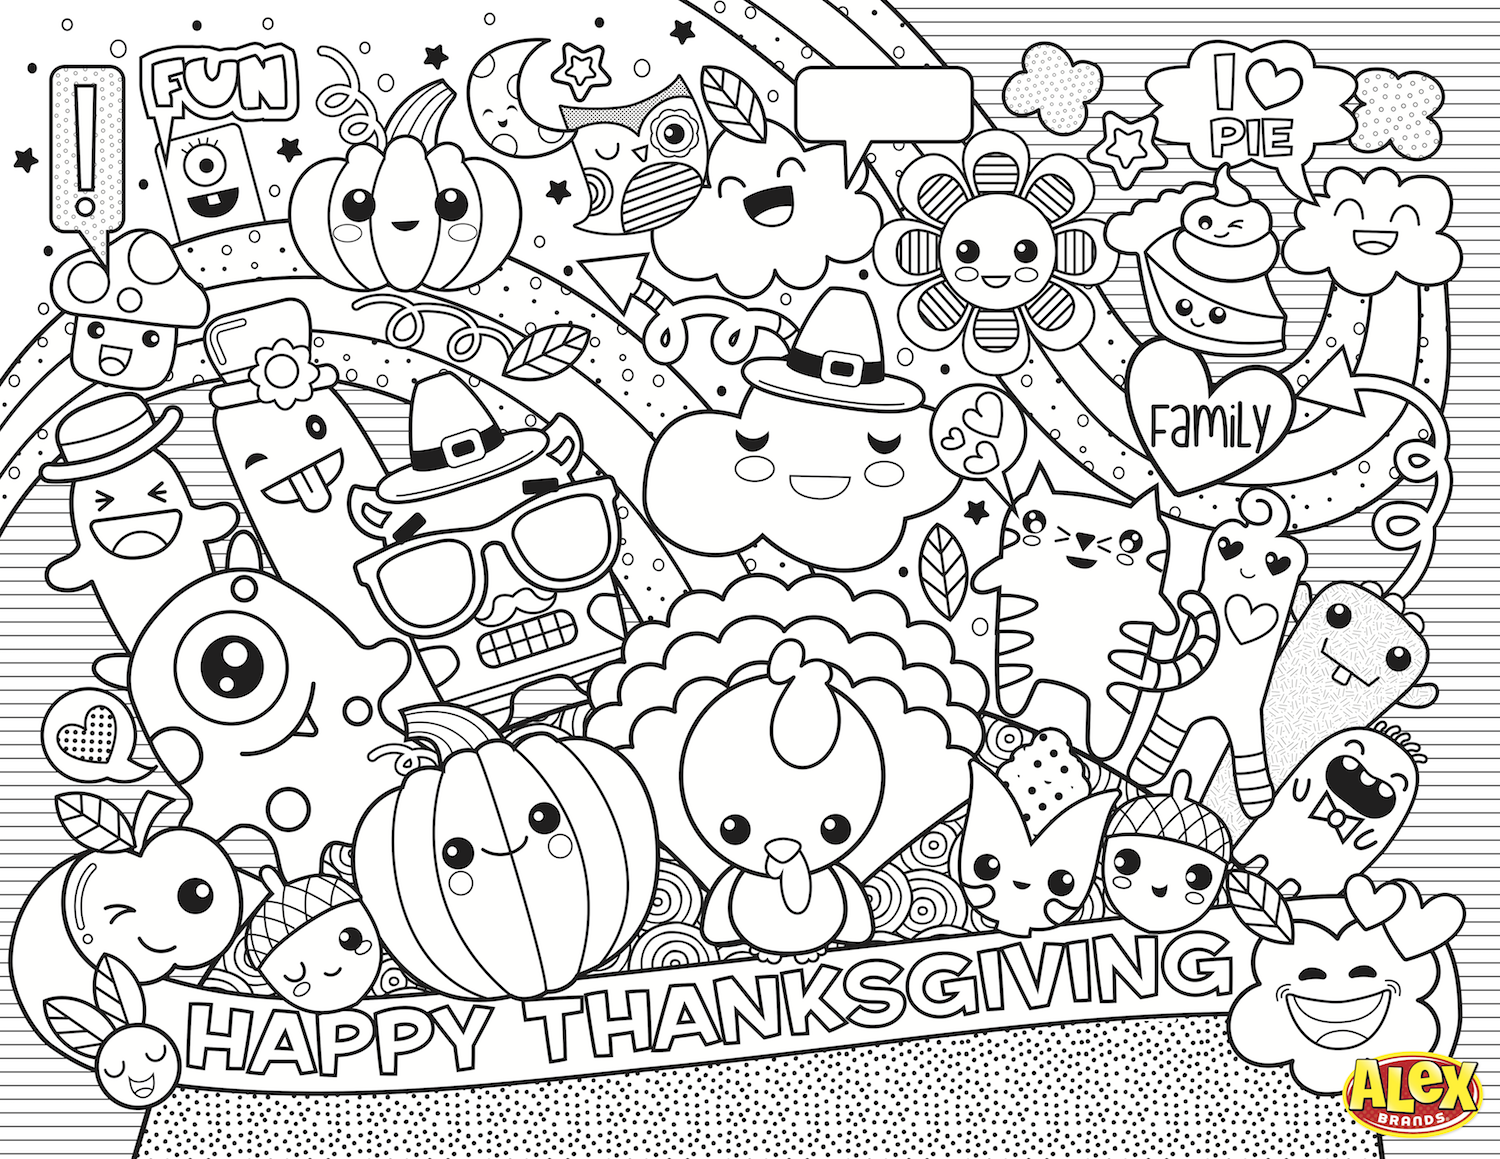 Thanksgiving Coloring Pages Star Wars Coloring Book Thanksgiving Coloring Pages Thanksgiving Placemats [ 1159 x 1500 Pixel ]